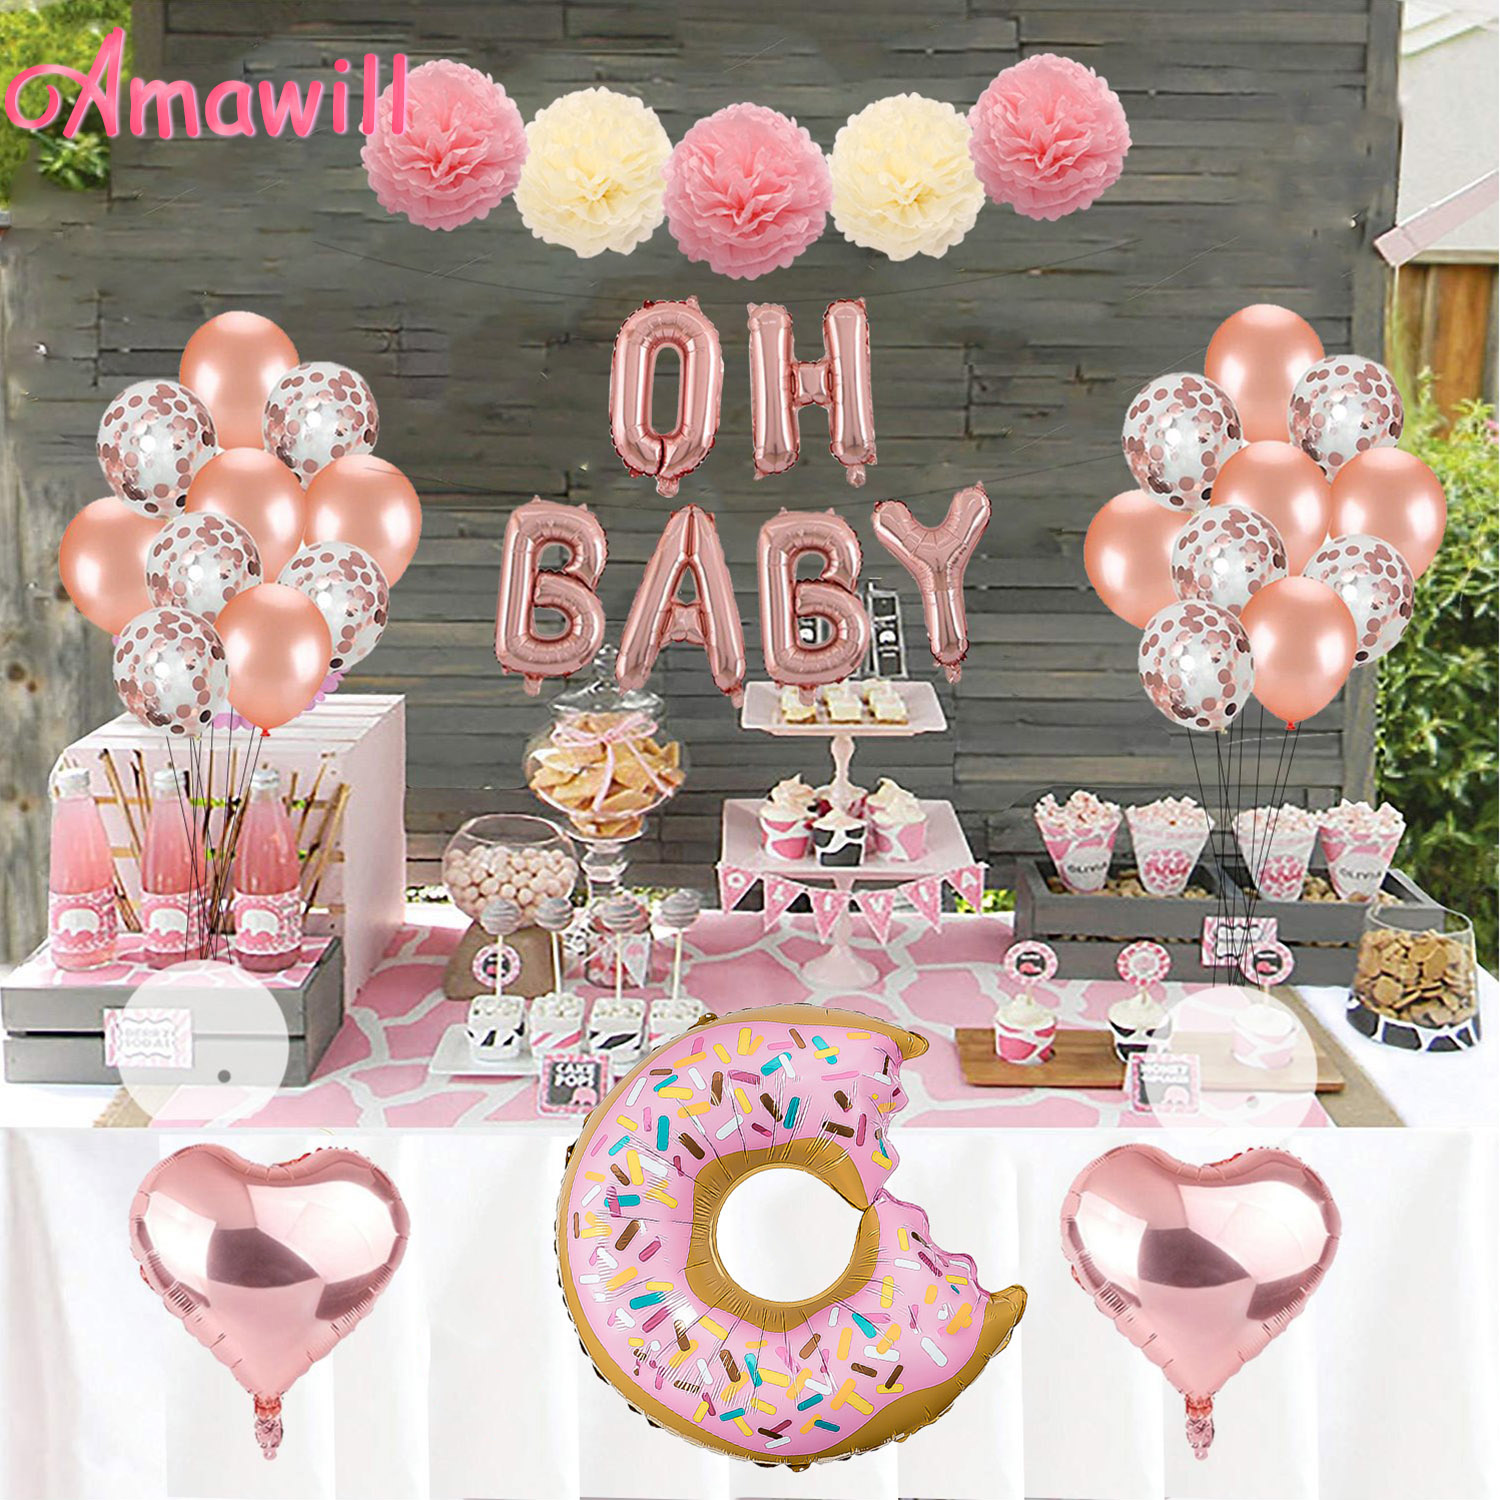 Amawill 16 Inch Rose Gold Oh Baby Letters Foil Balloons